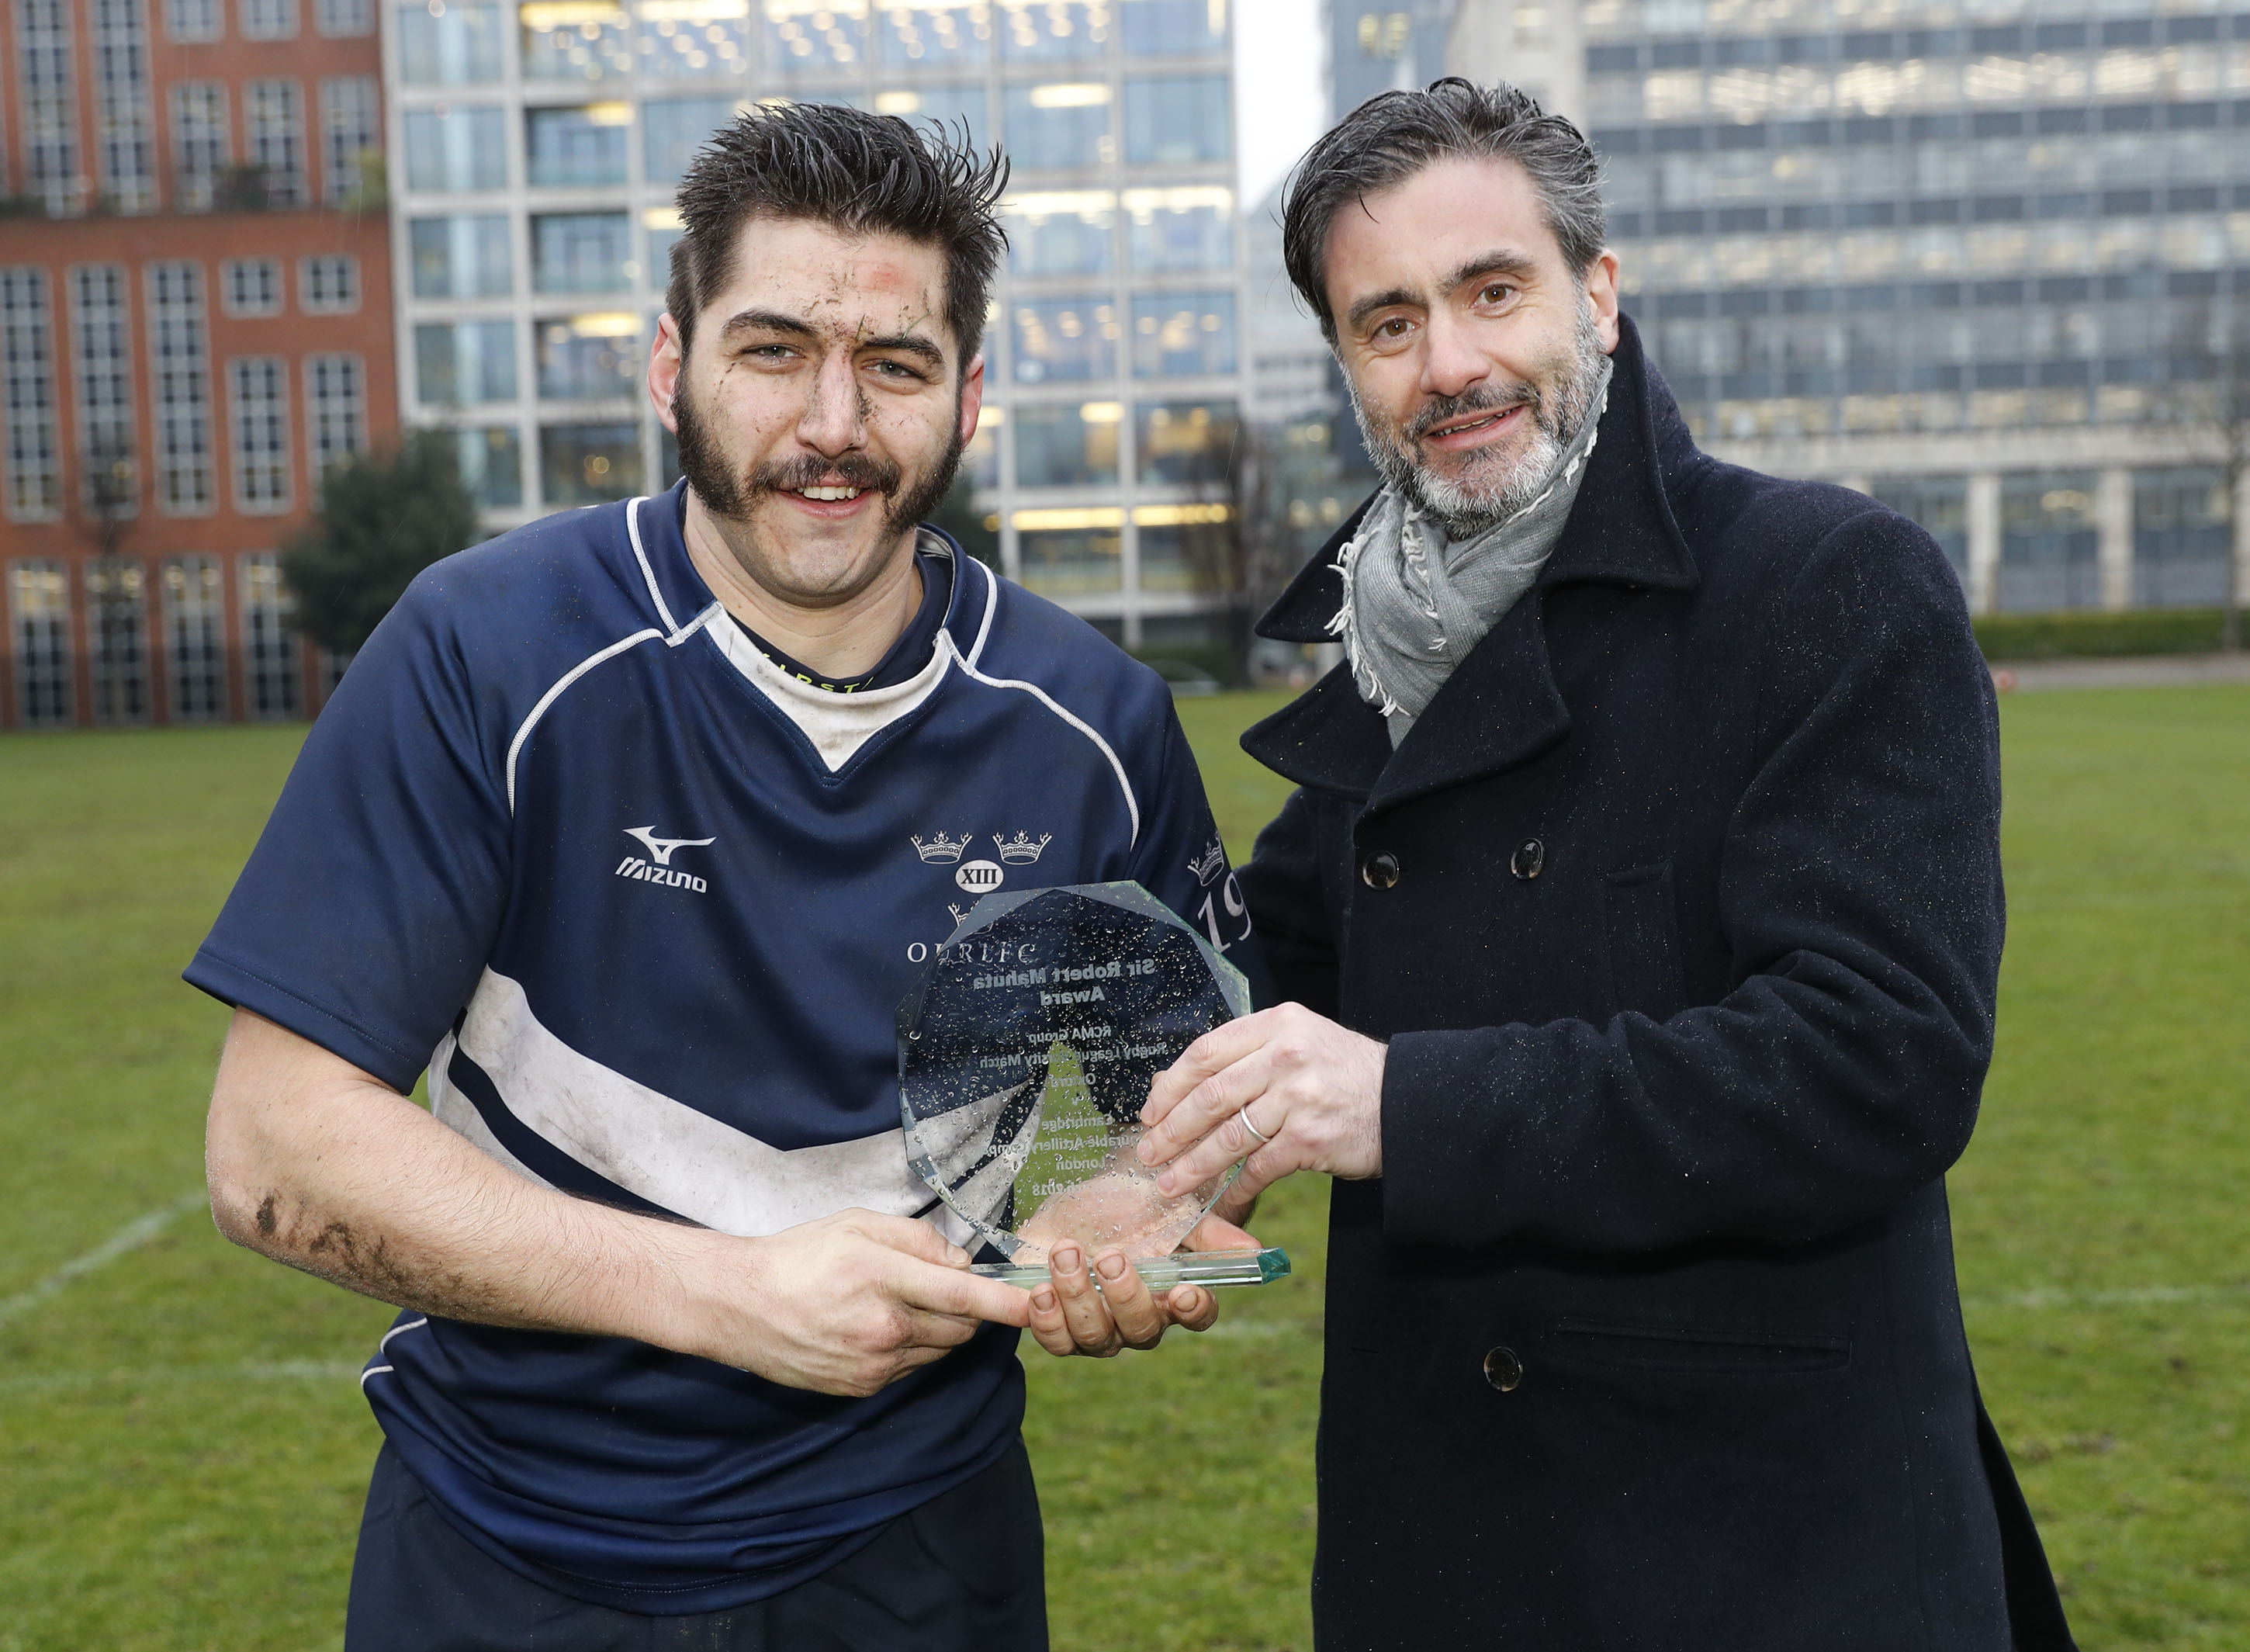 Phil Maffettone of Oxford recieve his man of the match award during the RCMA Varsity Rugby League game between Cambridge University and Oxford University at the HAC Ground, Moorgate, London on Fri Mar 9, 2018